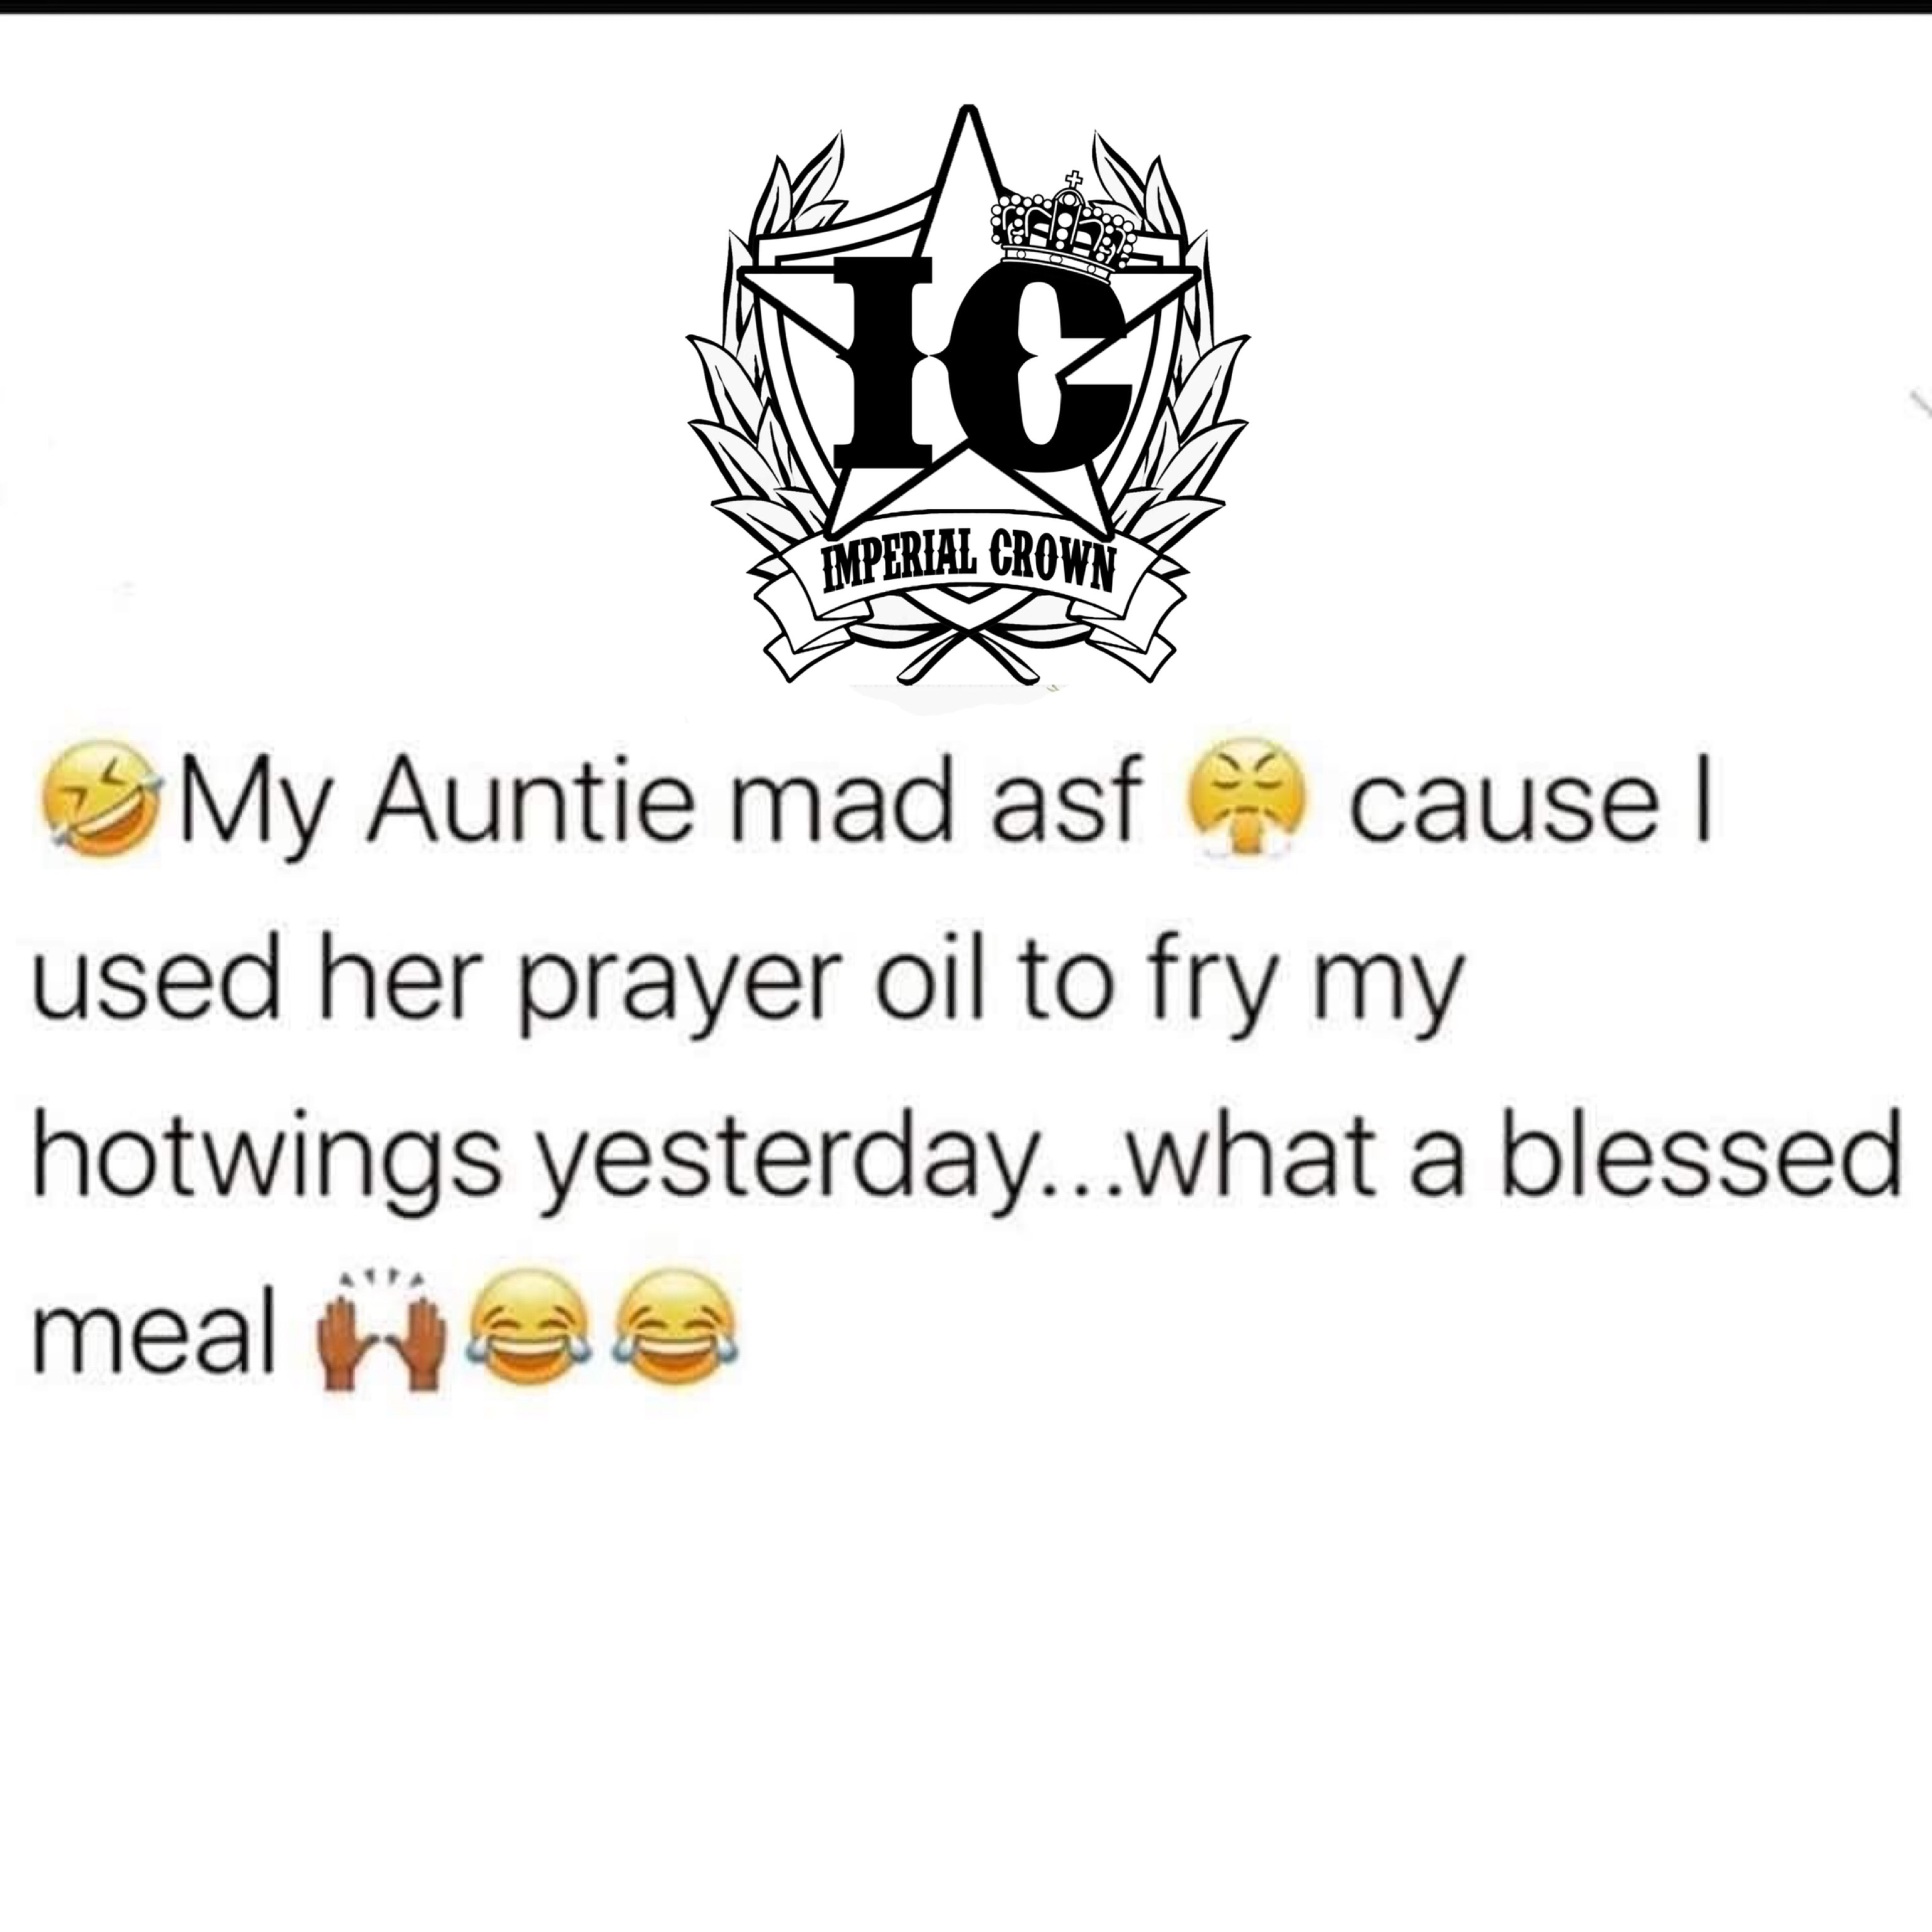 My auntie mad asf cause I used her prayer oil to fry my hot wings yesterday what a blessed meal